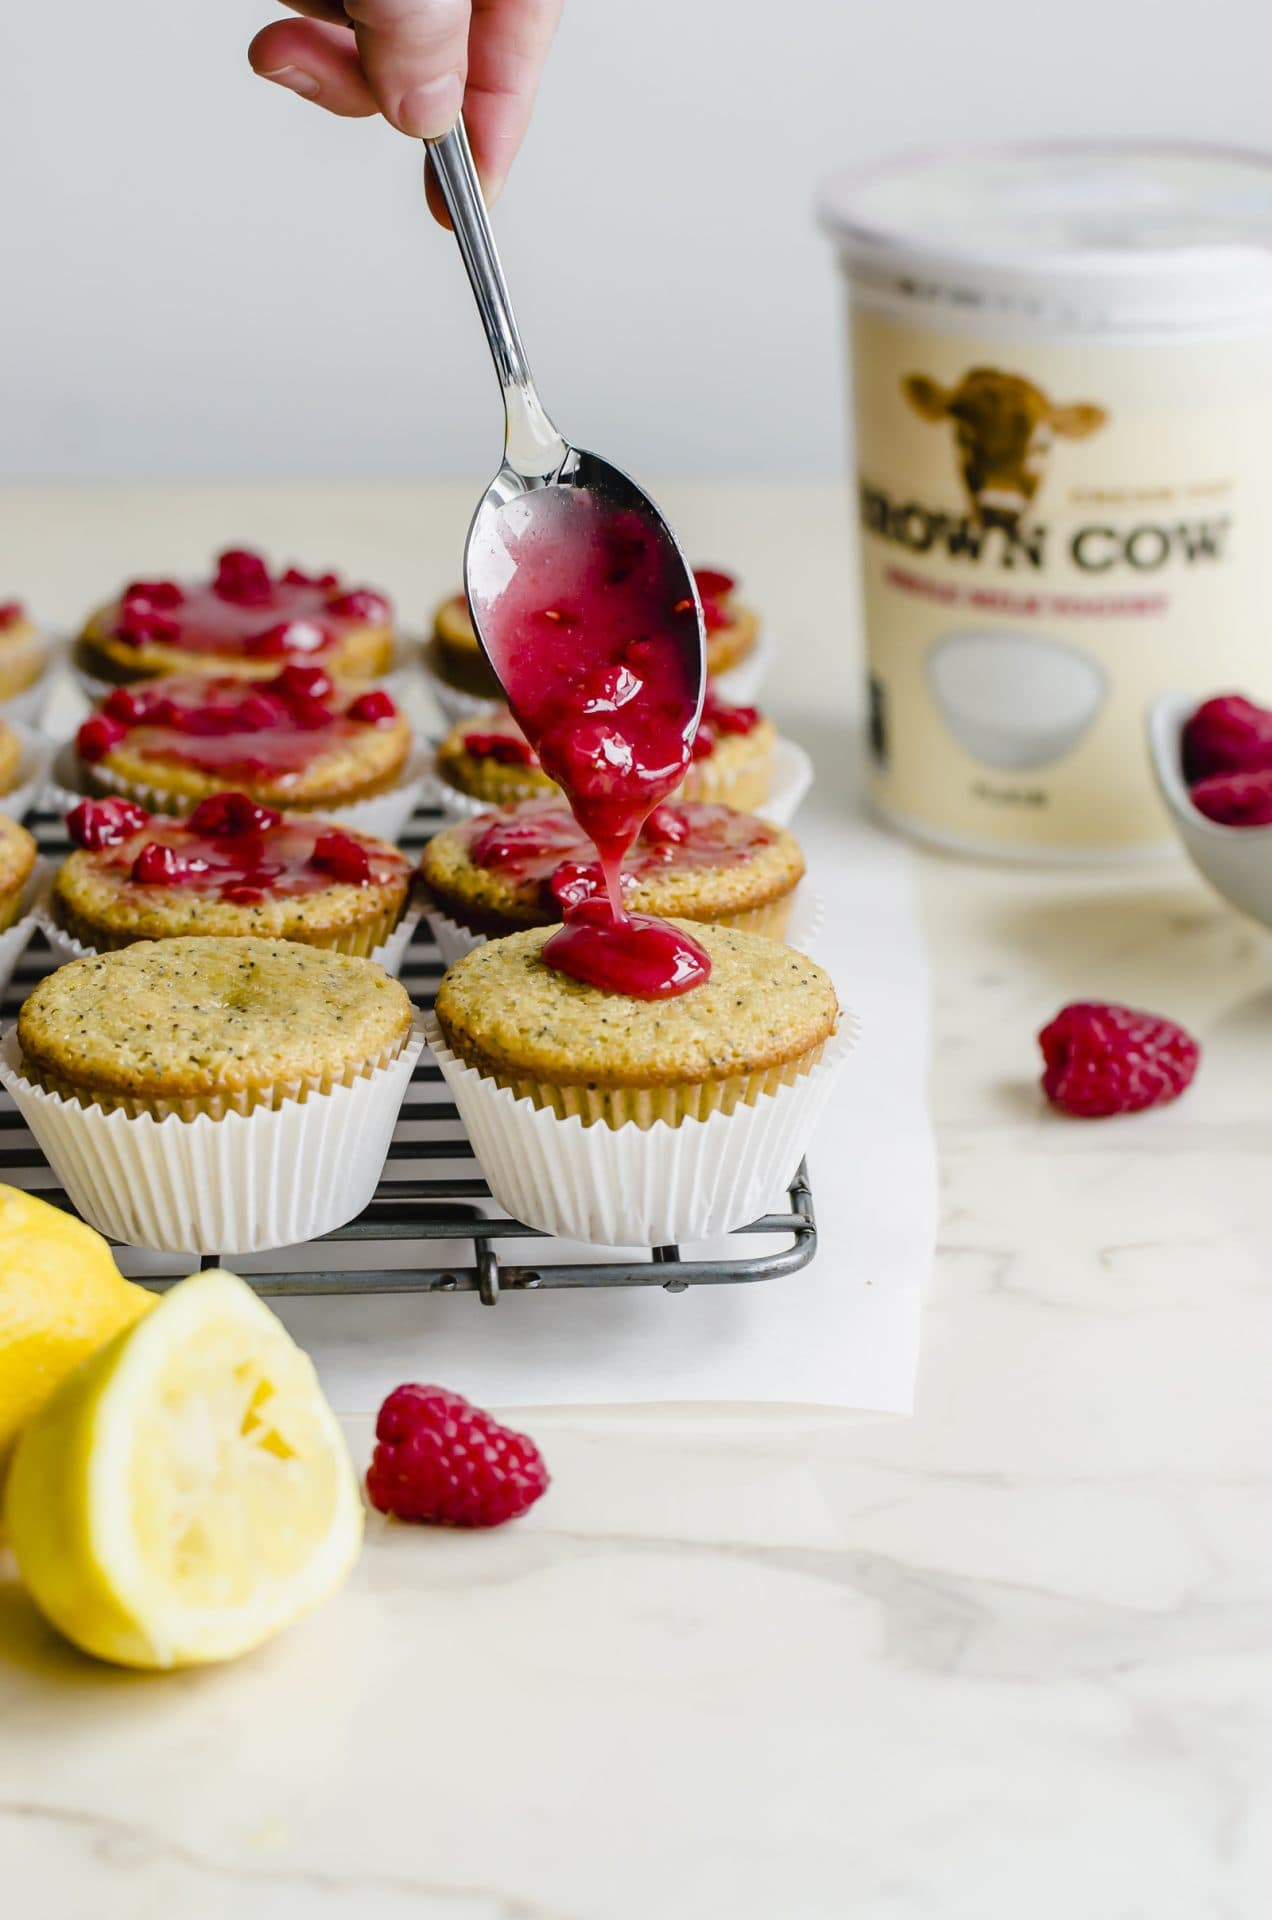 A spoon drizzling fresh raspberry glaze on a lemon poppyseed muffins.